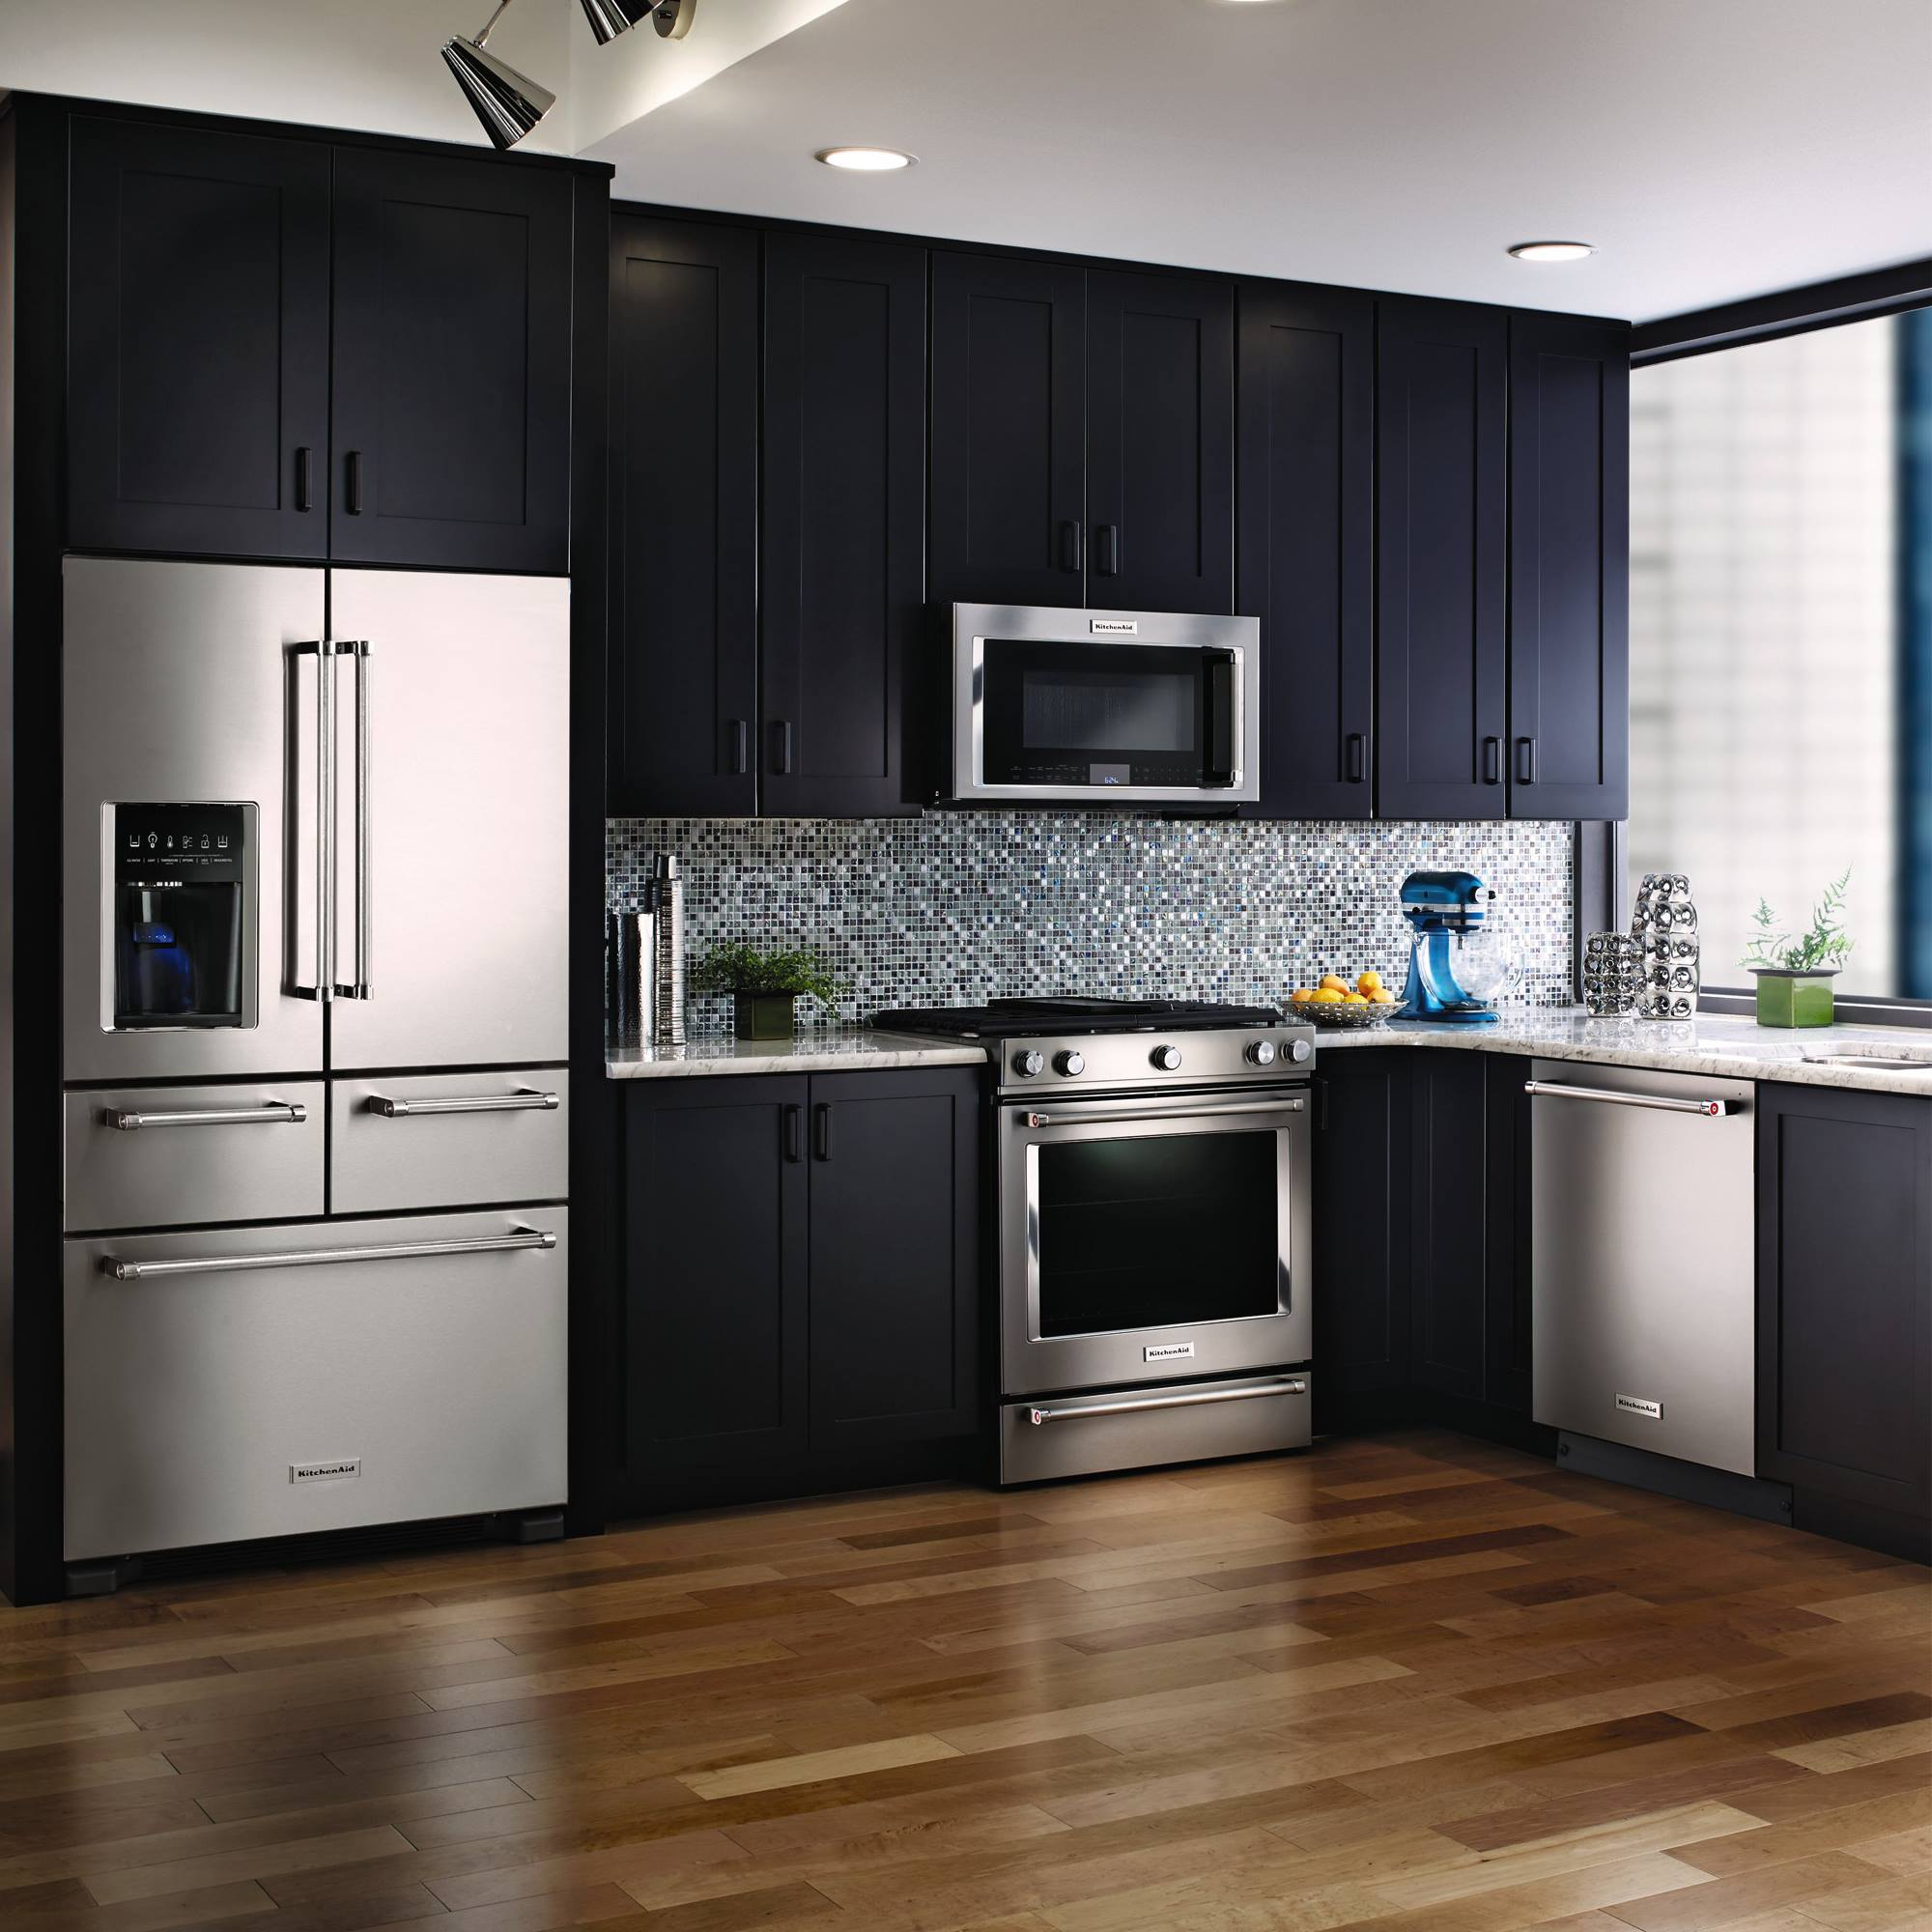 Home Depot Canada Super Savings Event: Save Big on Many Appliances!